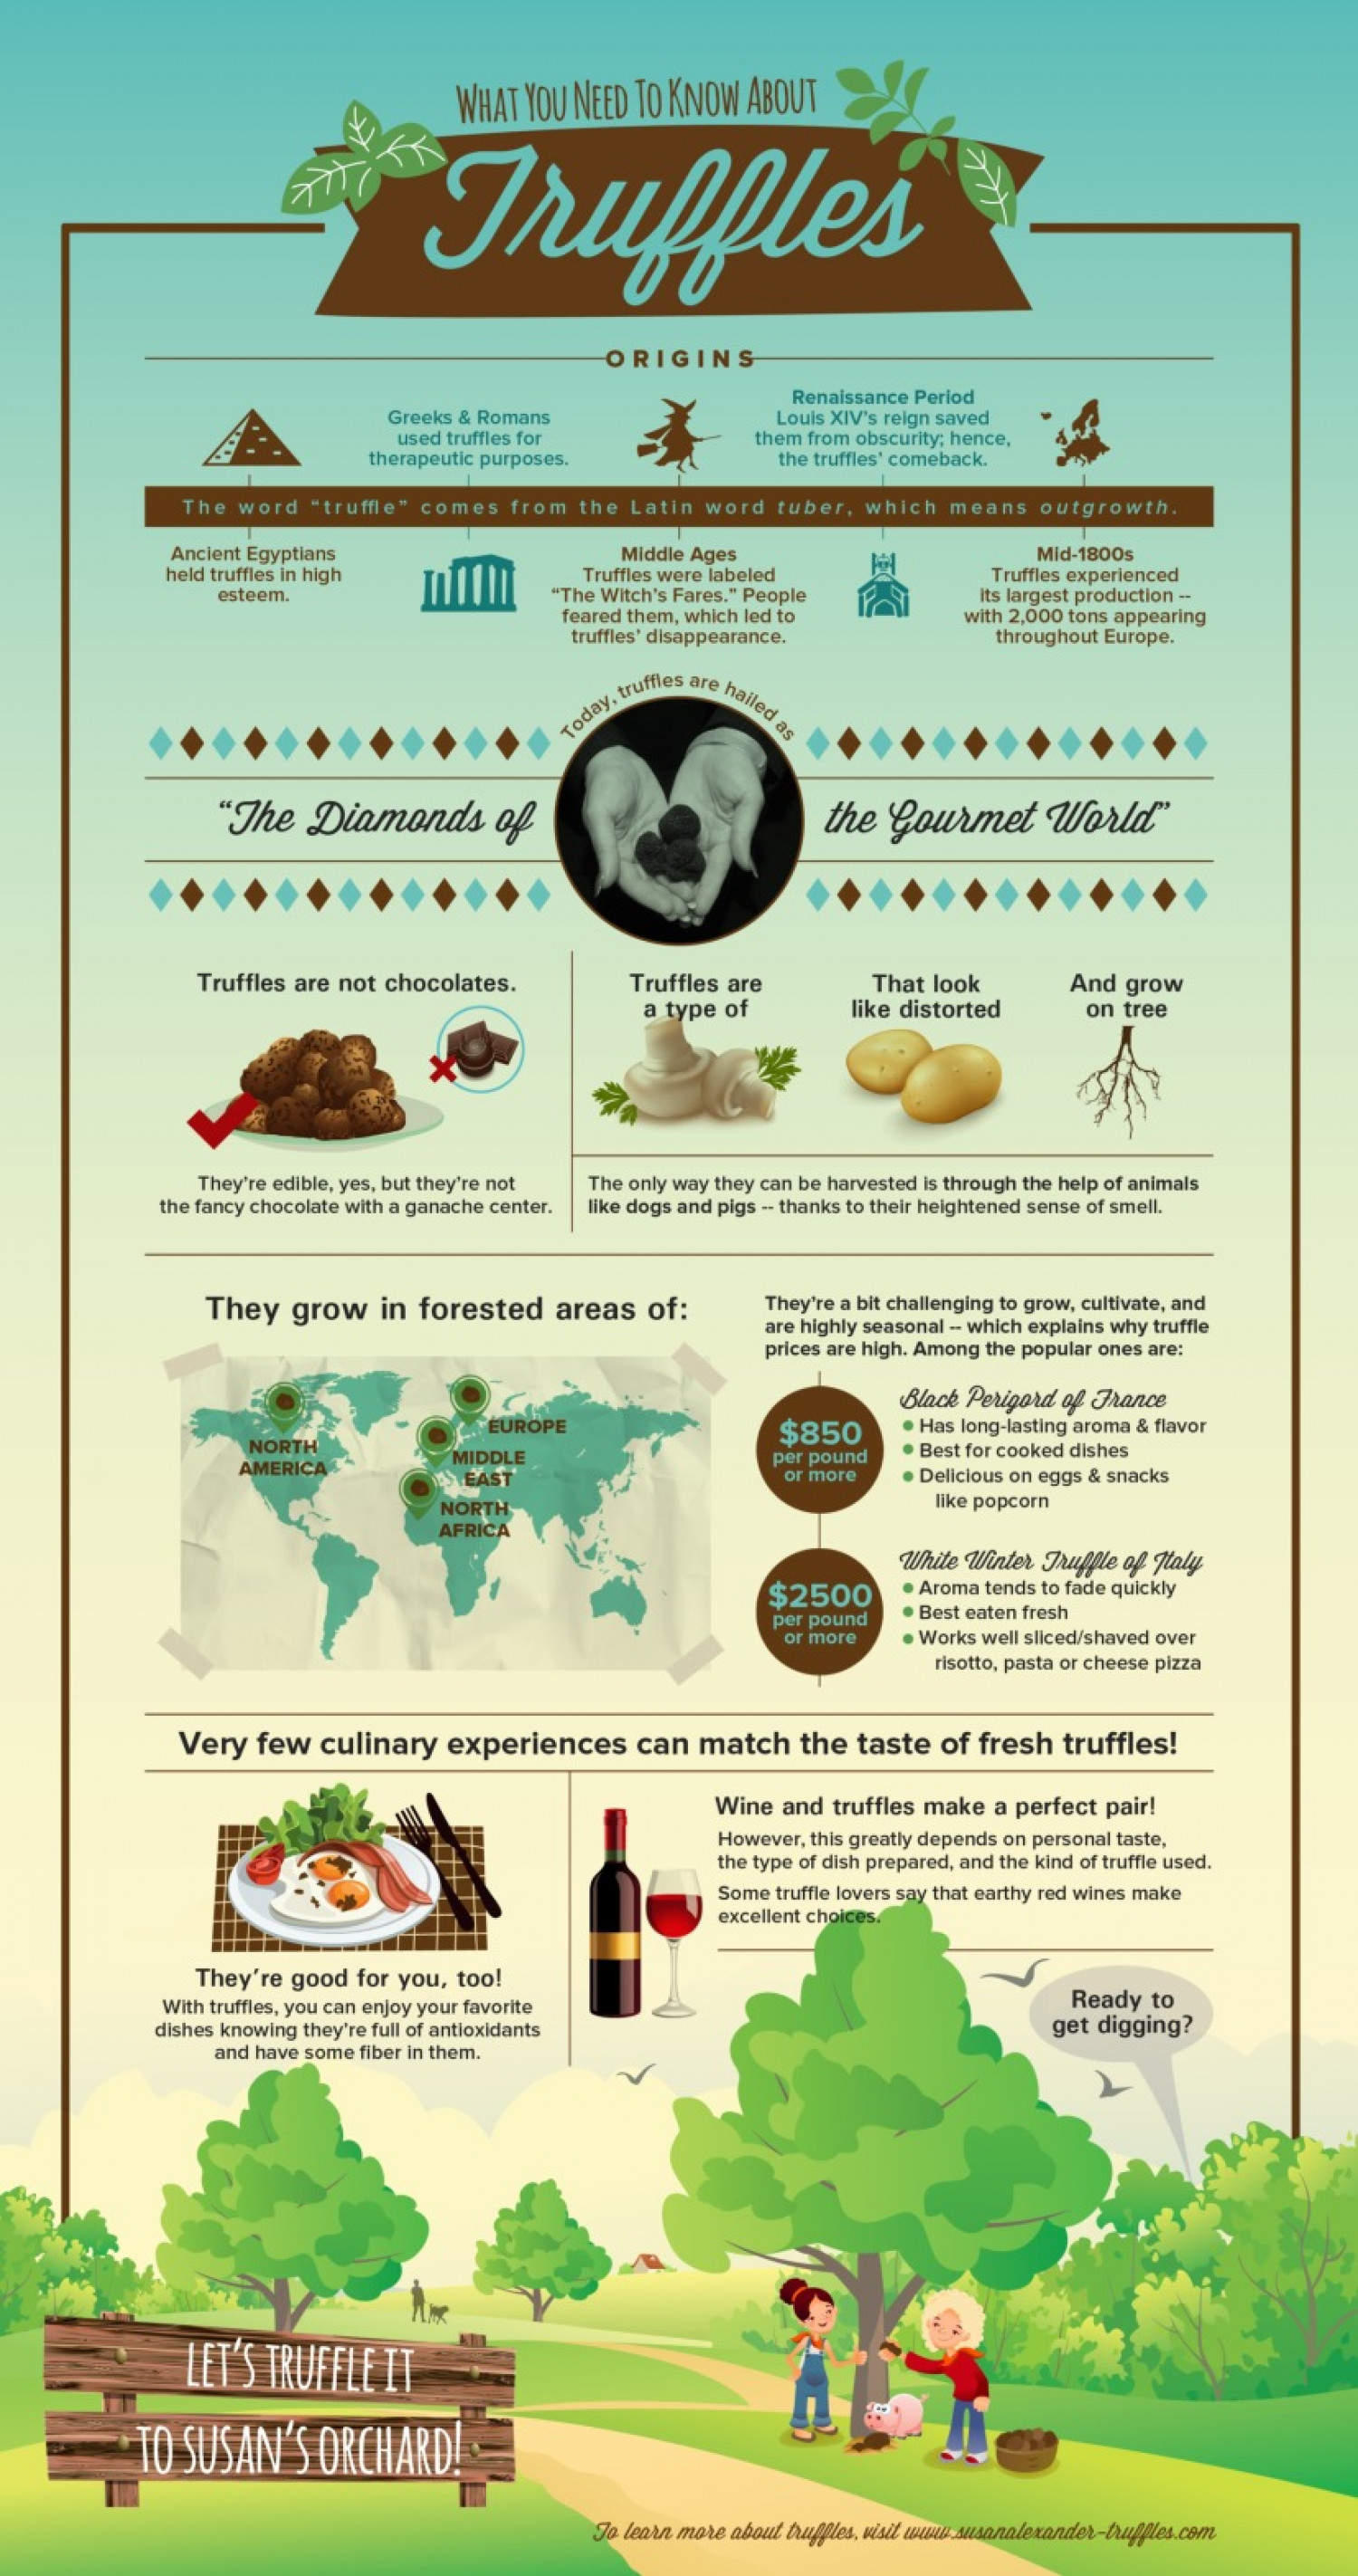 What You Need To Know About Truffles Infographic